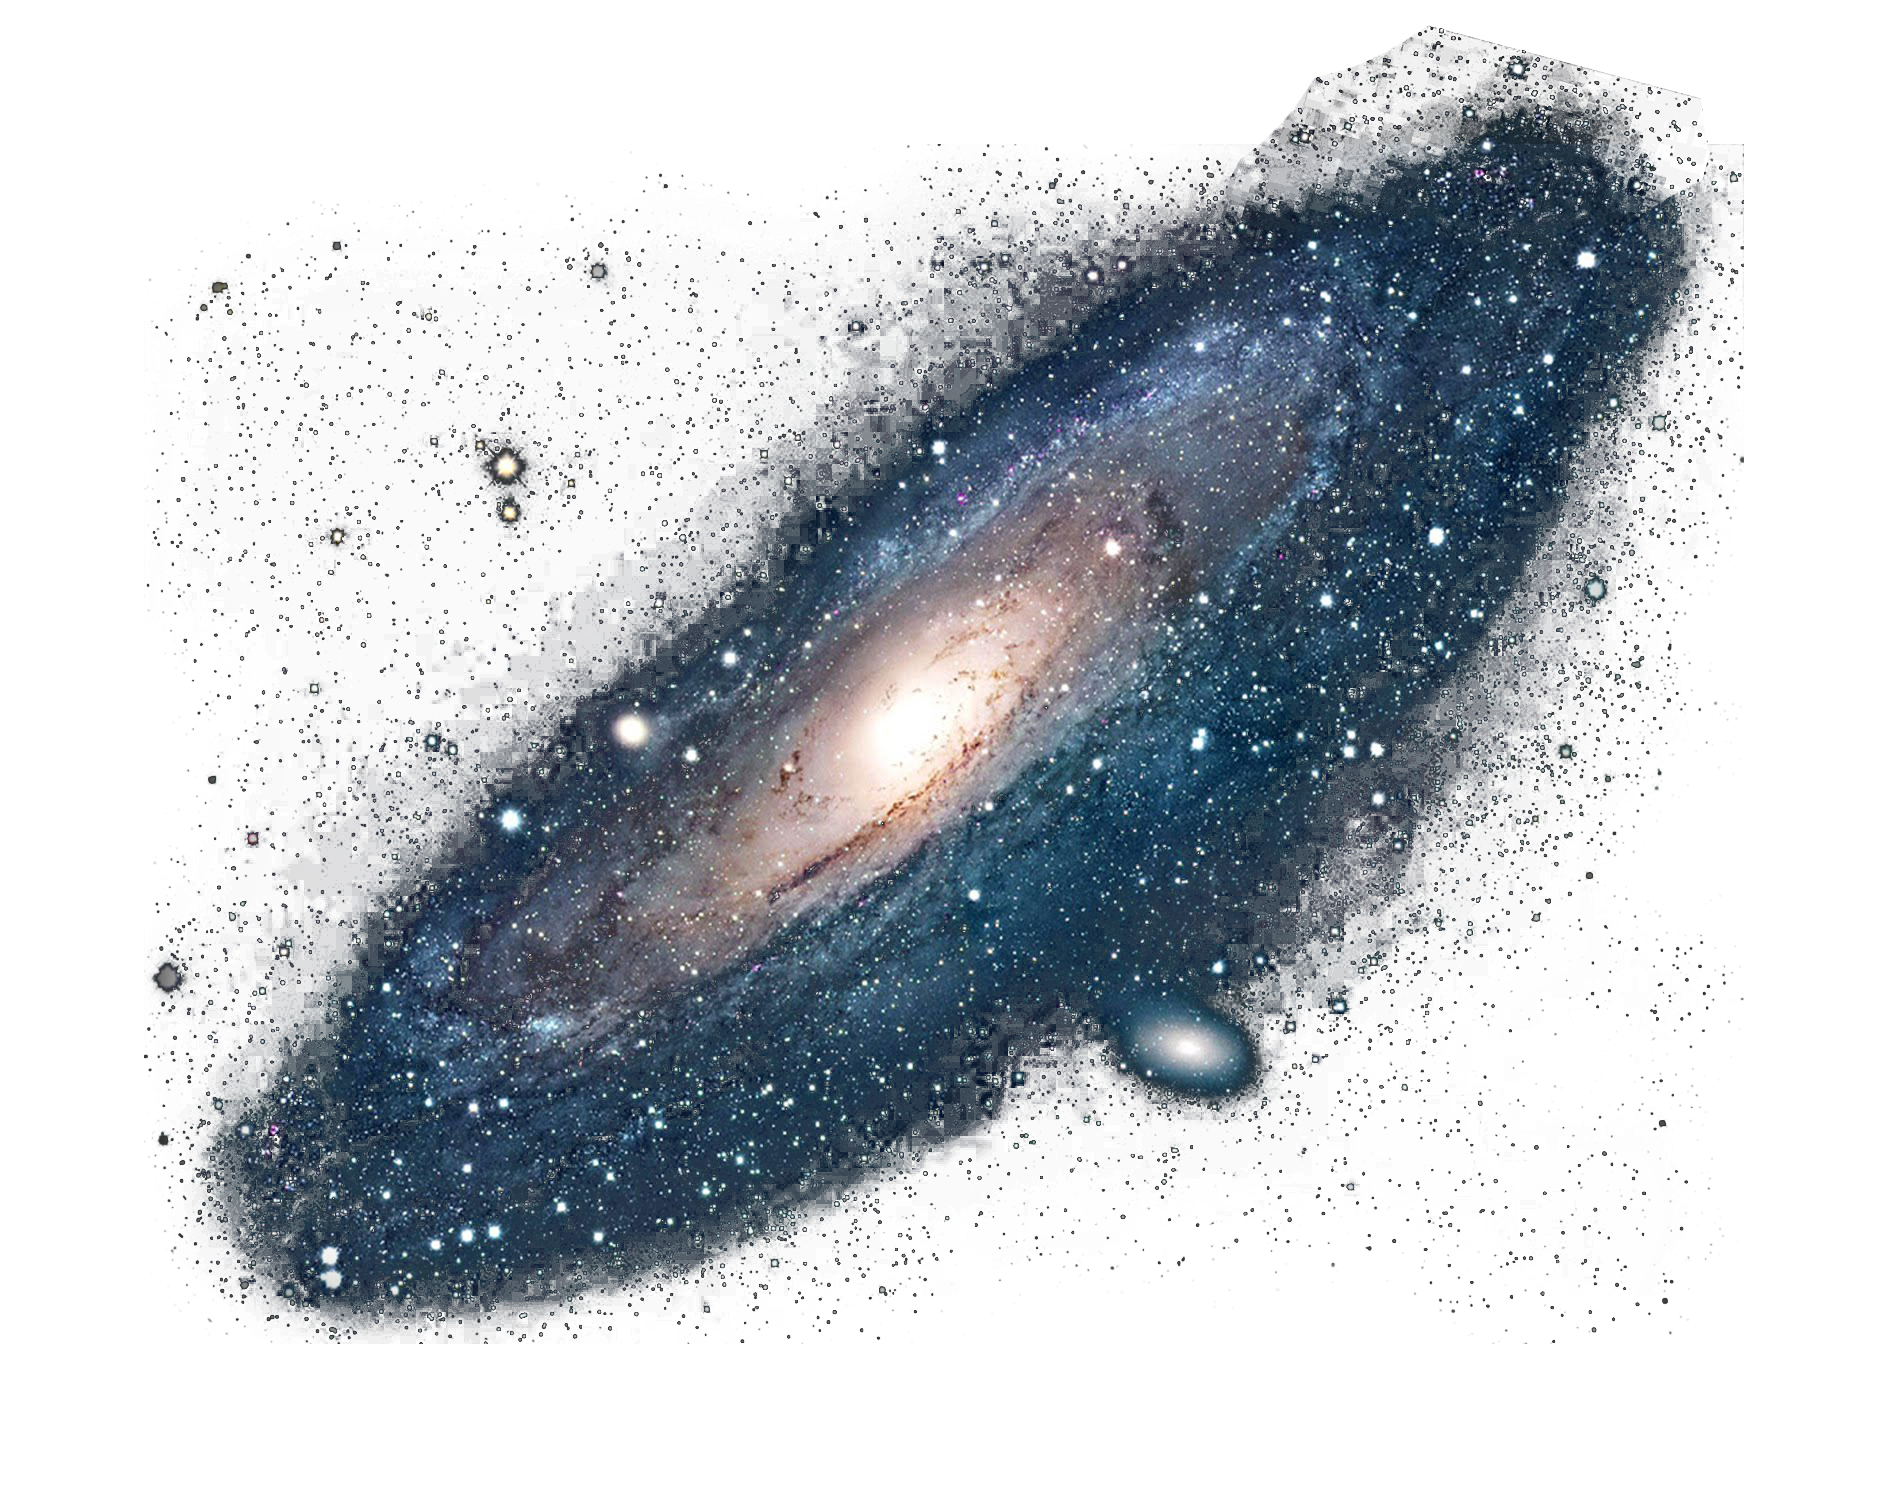 Universe Pictures Png - The universe | 135 Wallpapers